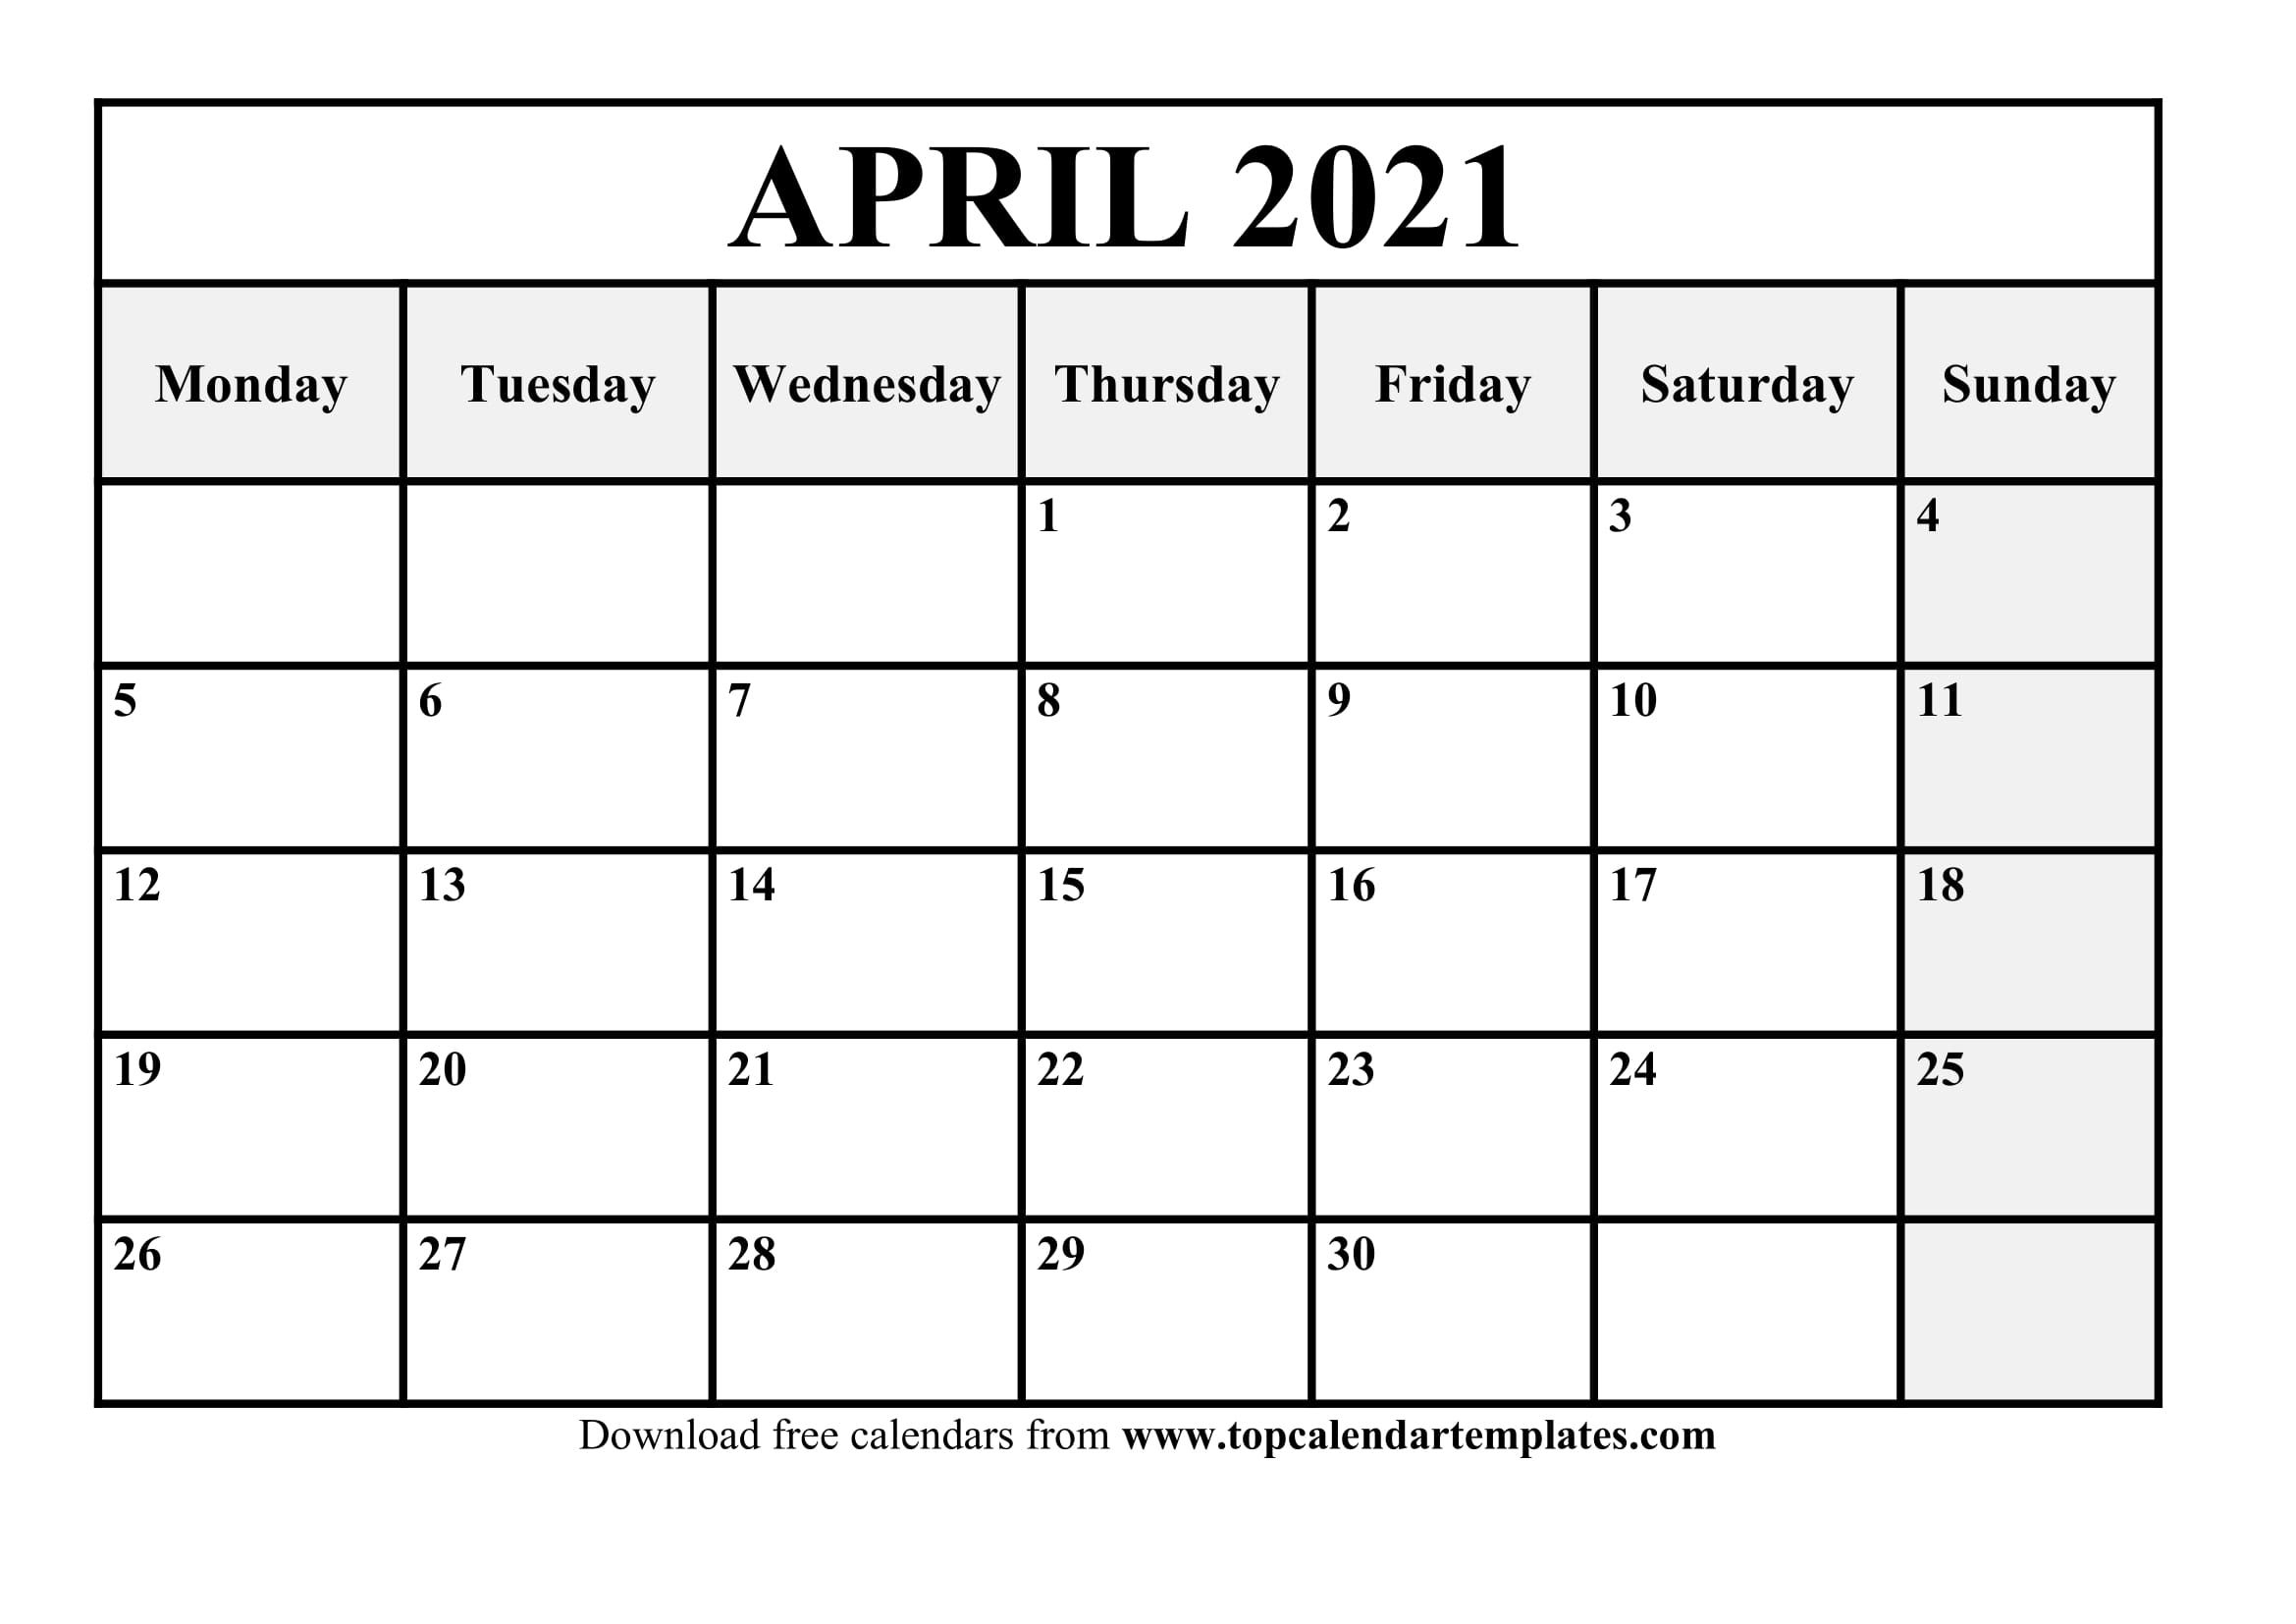 Free April 2021 Printable Calendar In Editable Format